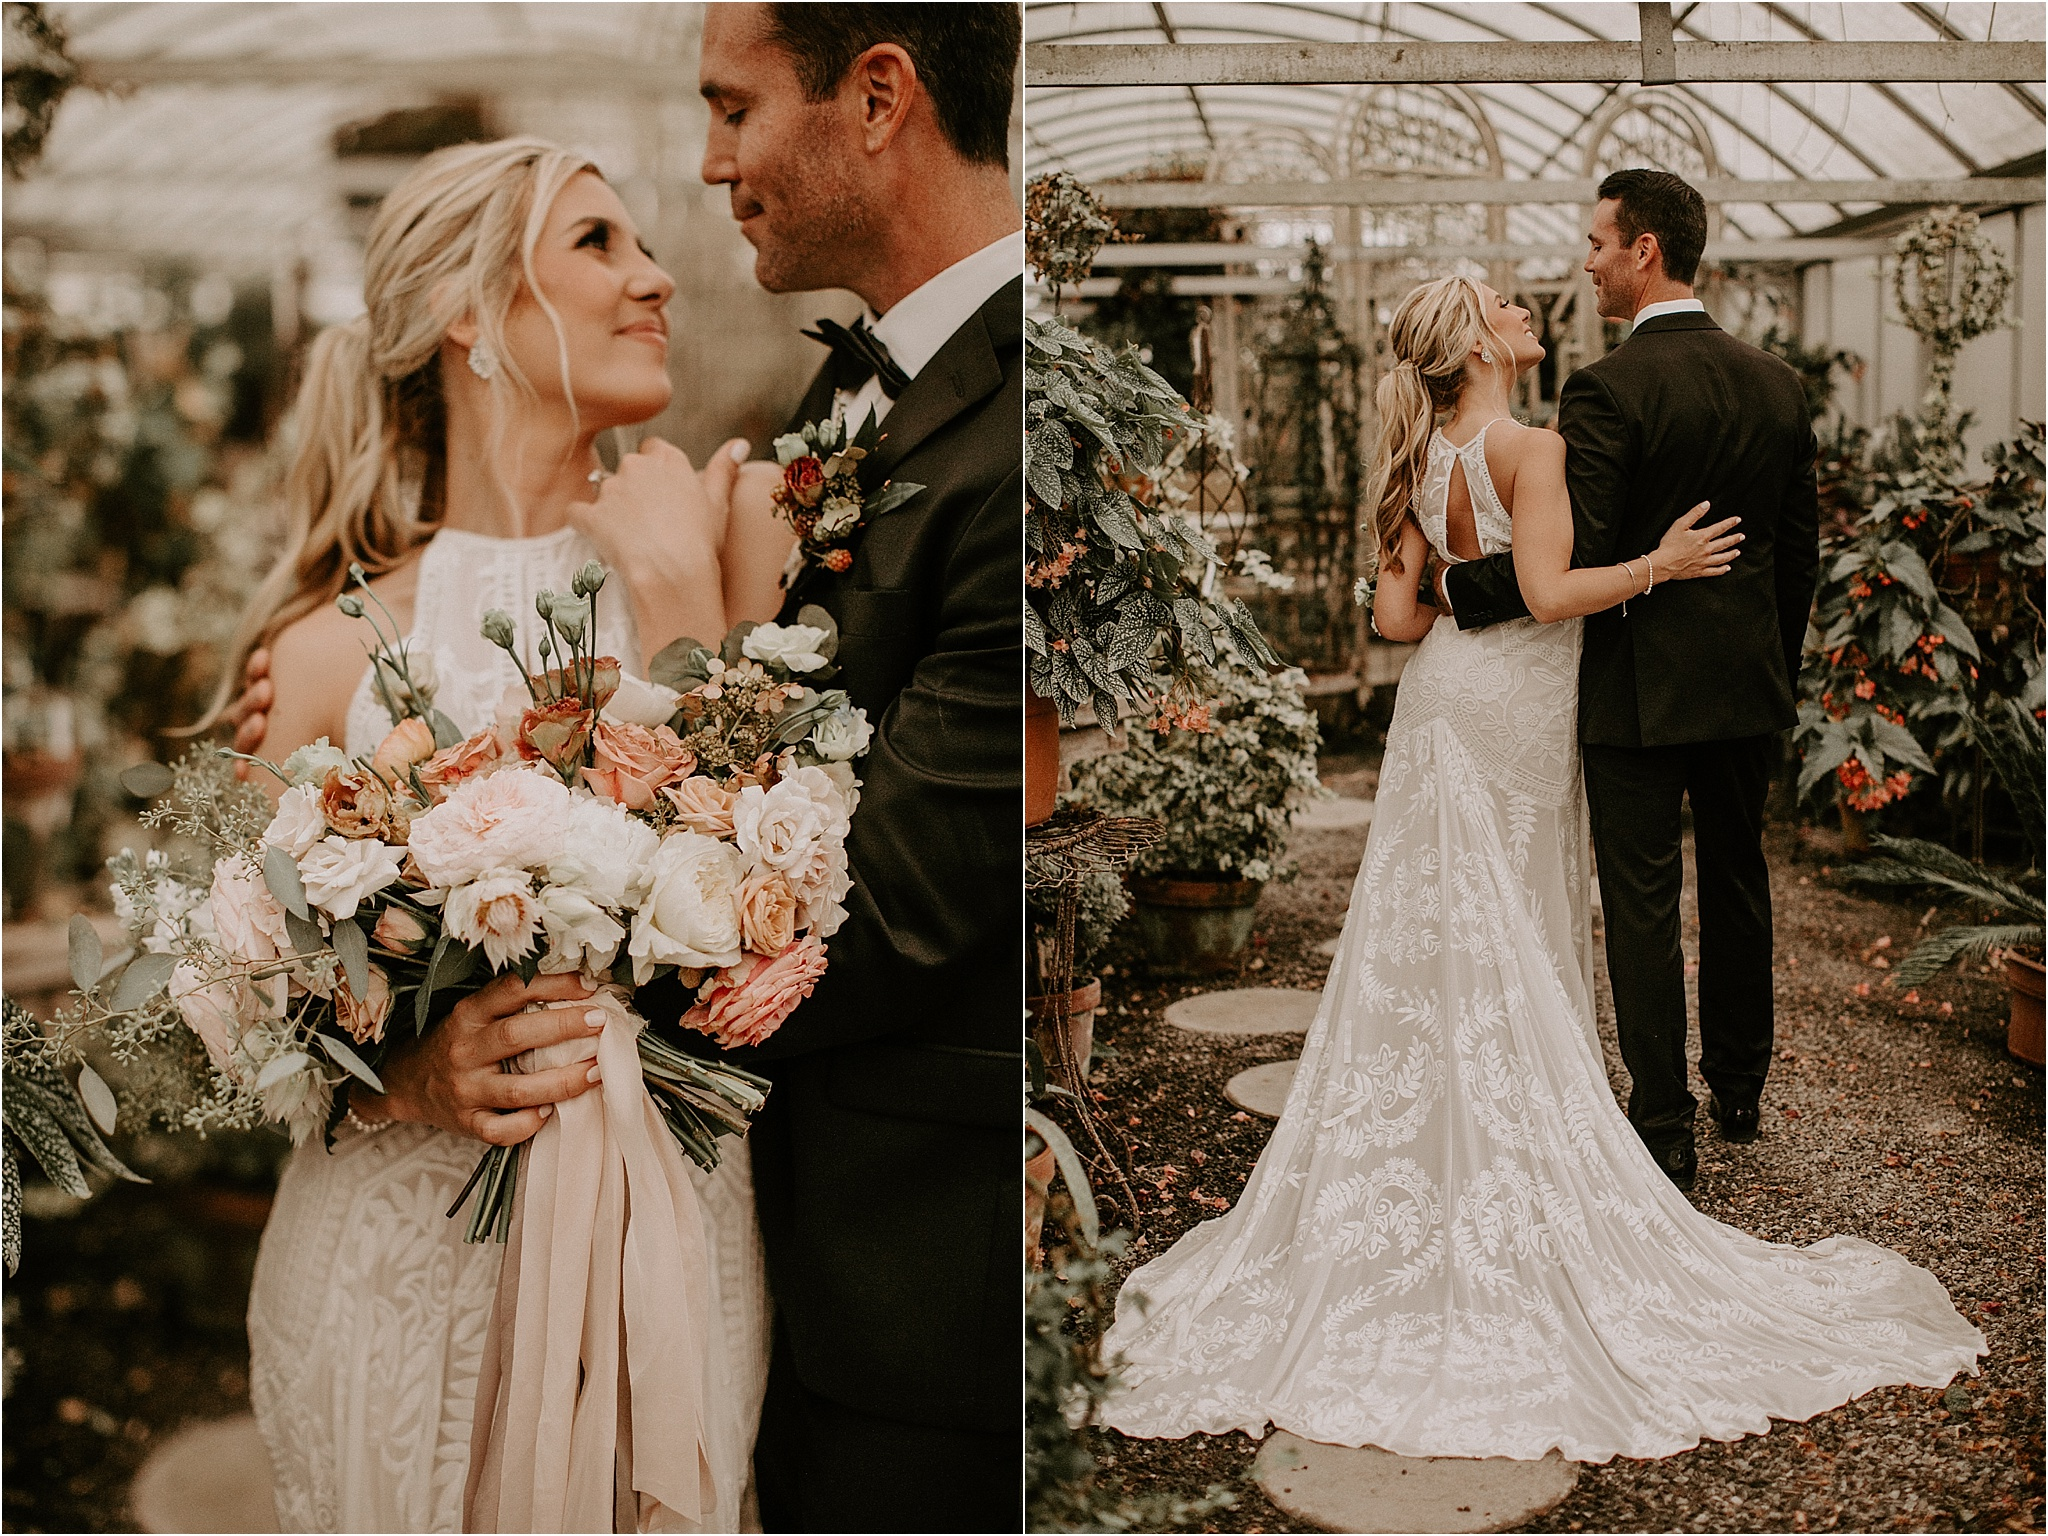 Sarah_Brookhart_Hortulus_Farm_Garden_and_Nursey_Wedding_Photographer_0029.jpg